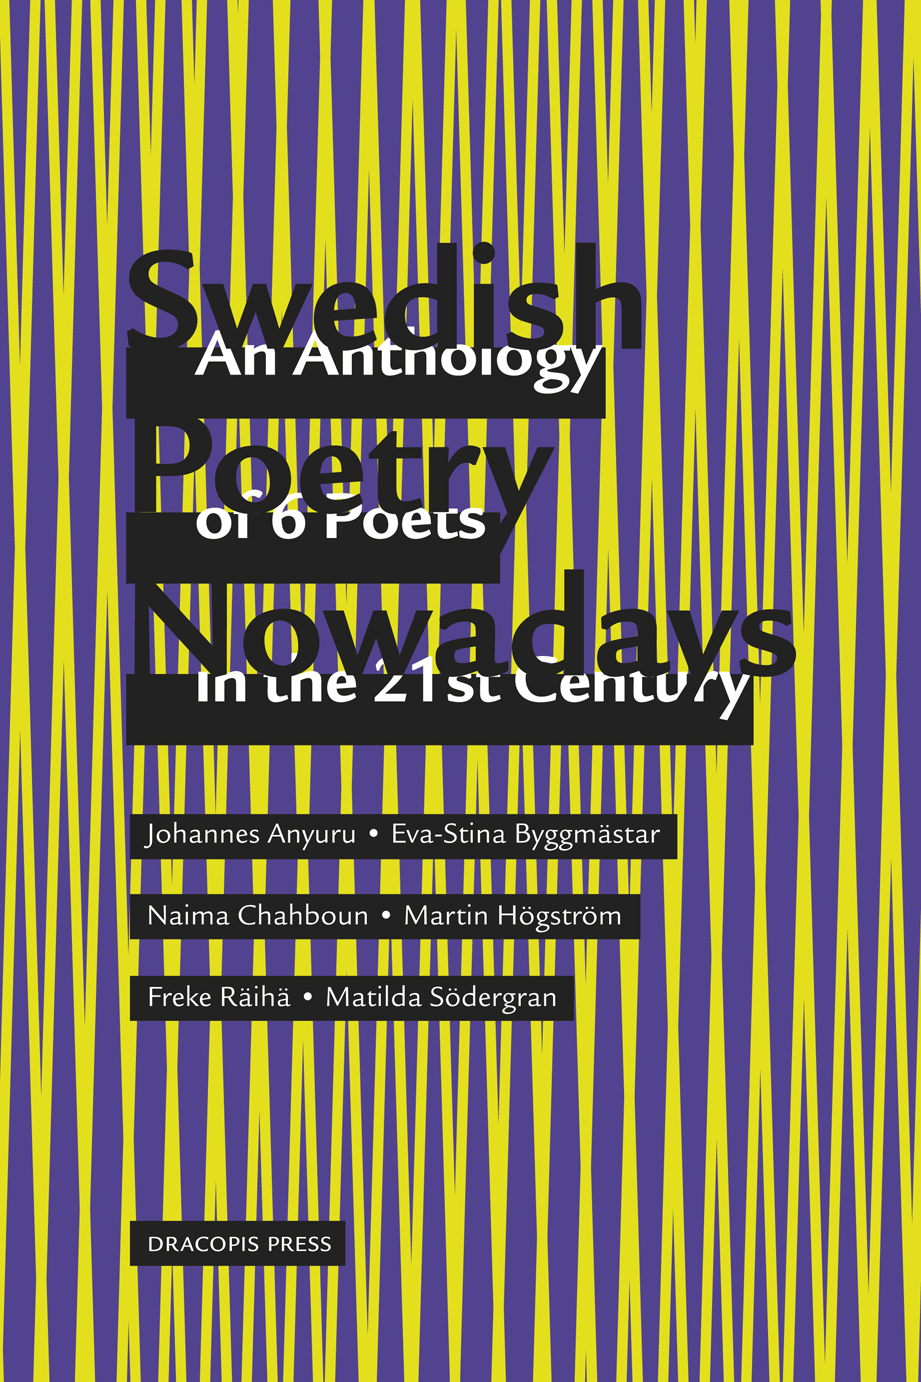 Swedish Poetry Nowadays; An Anthology of 6 Poets in the 21st Century